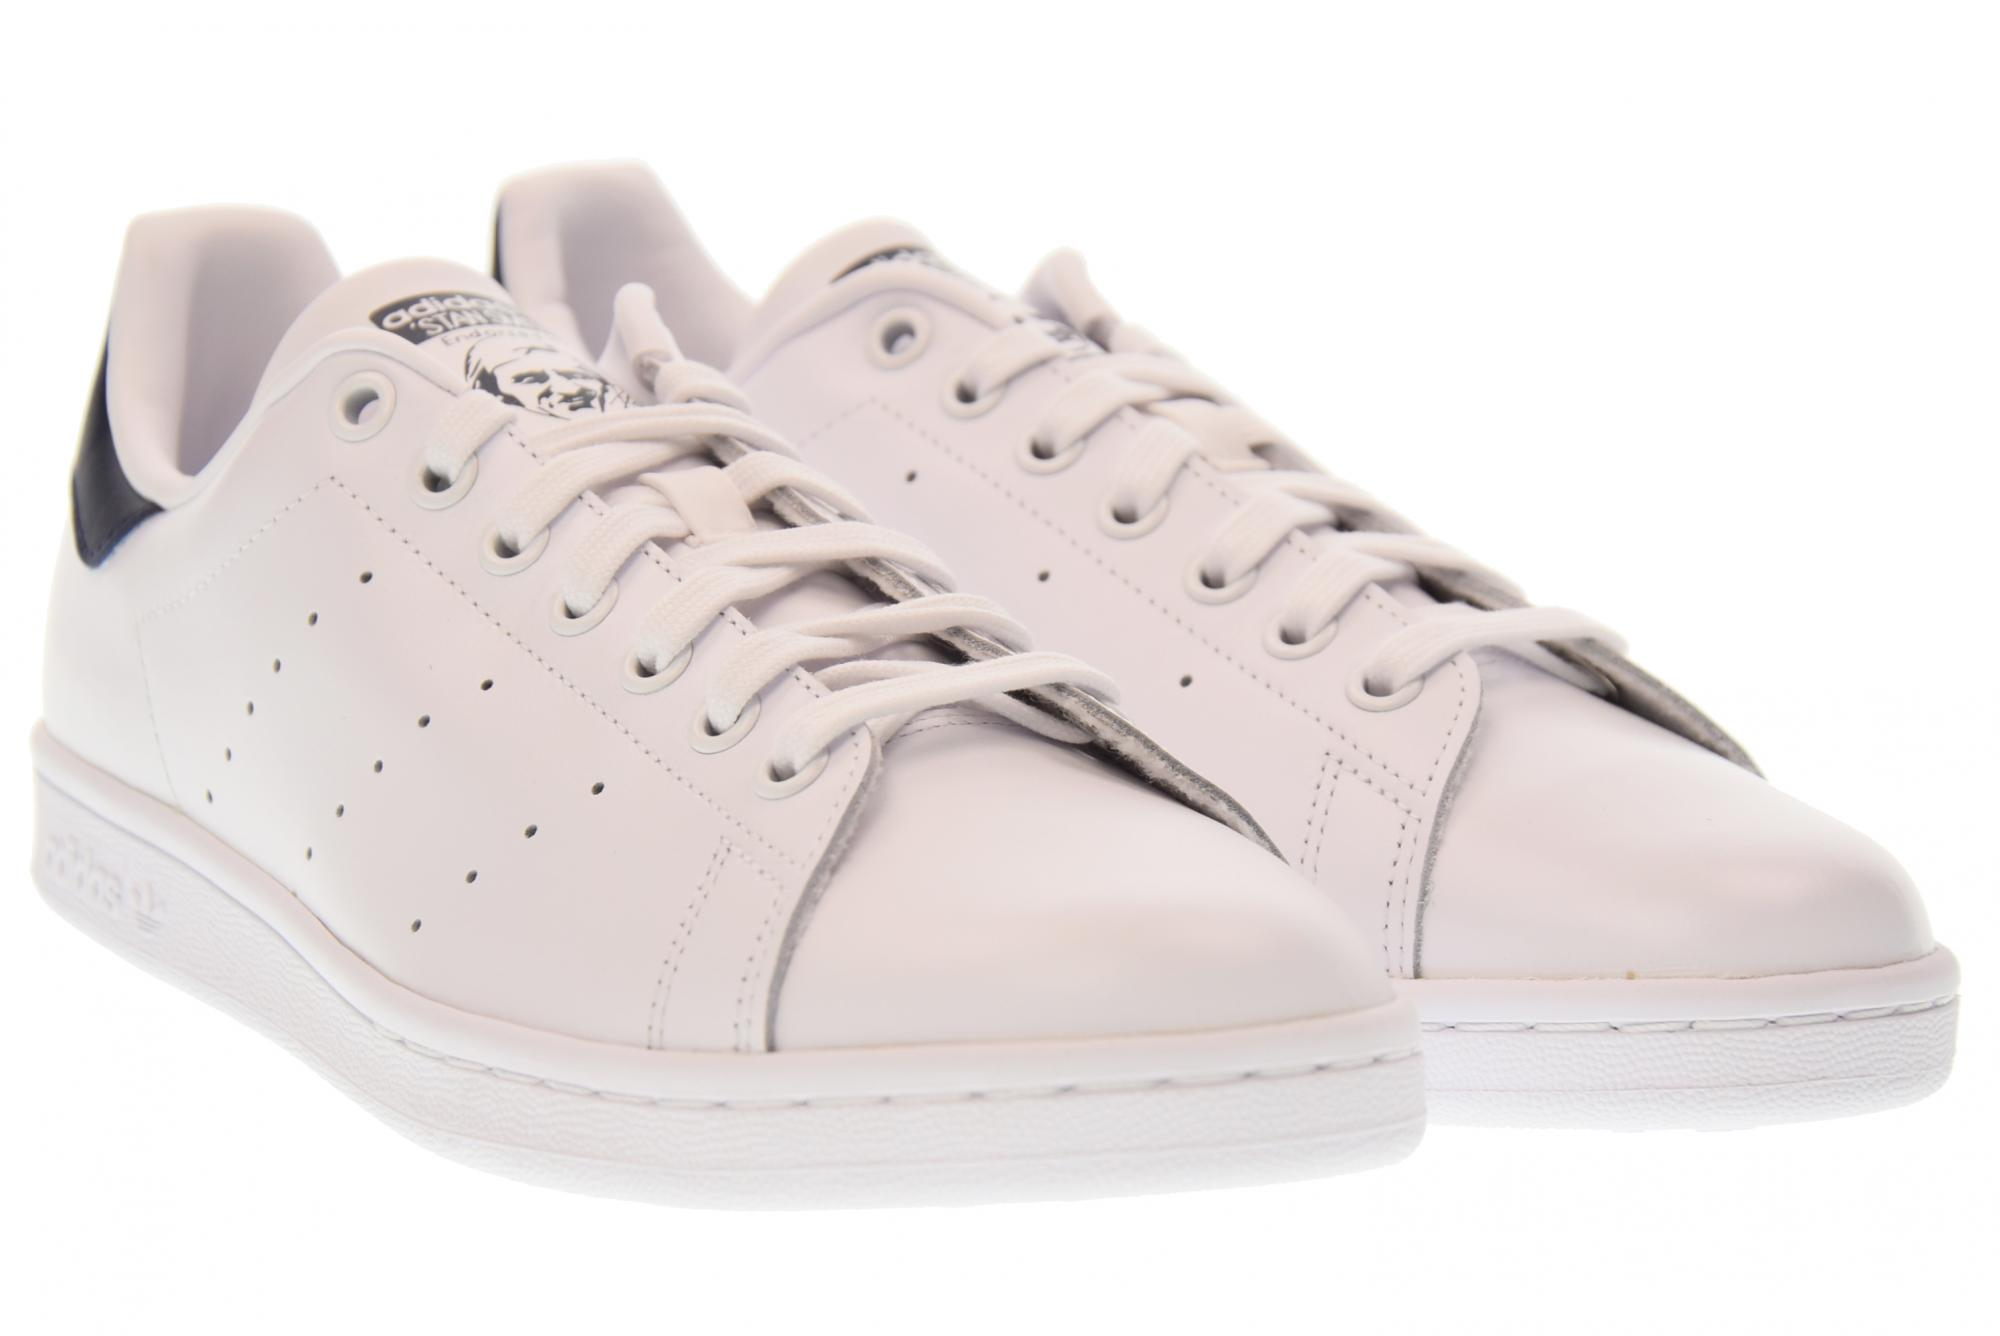 Smith Stan Bas Adidas M20325 Unisex Baskets P19 Chaussures nP0O8kw